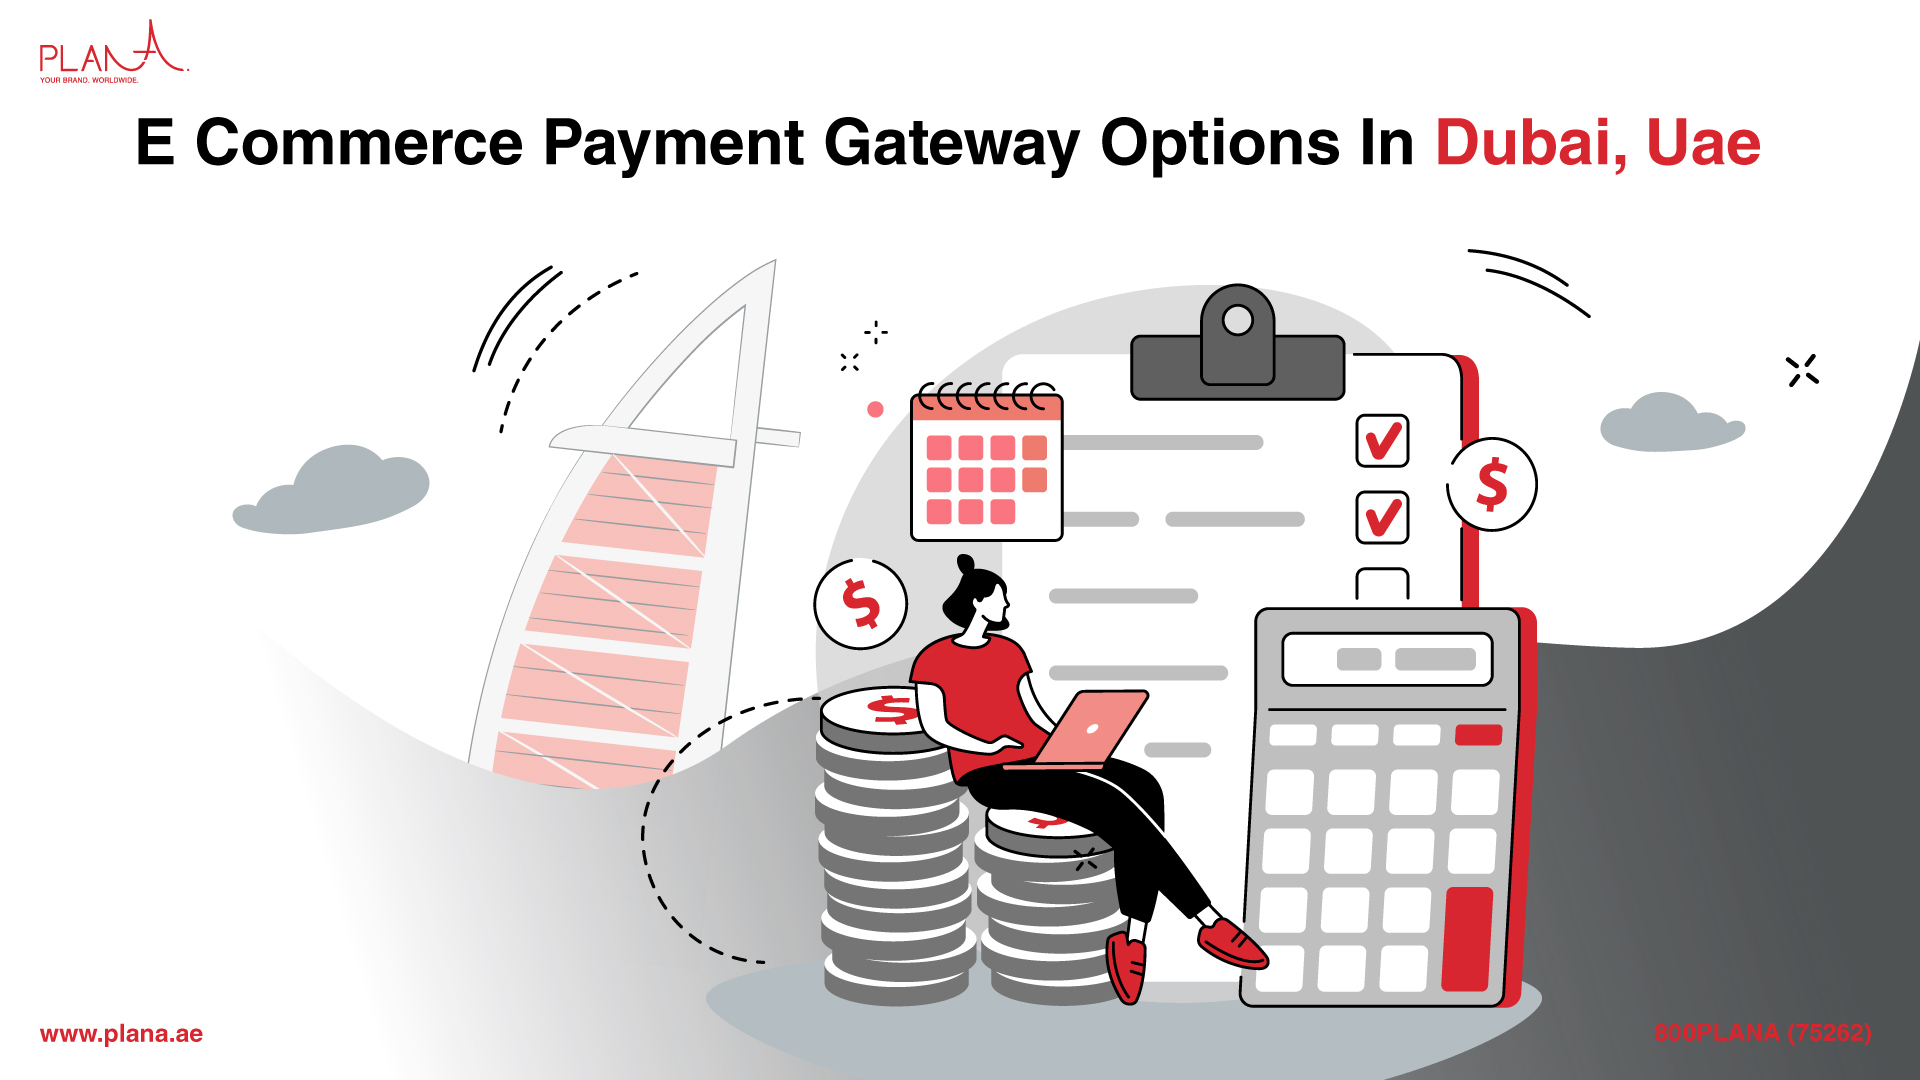 Ecommerce Payment Gateway Options in Dubai